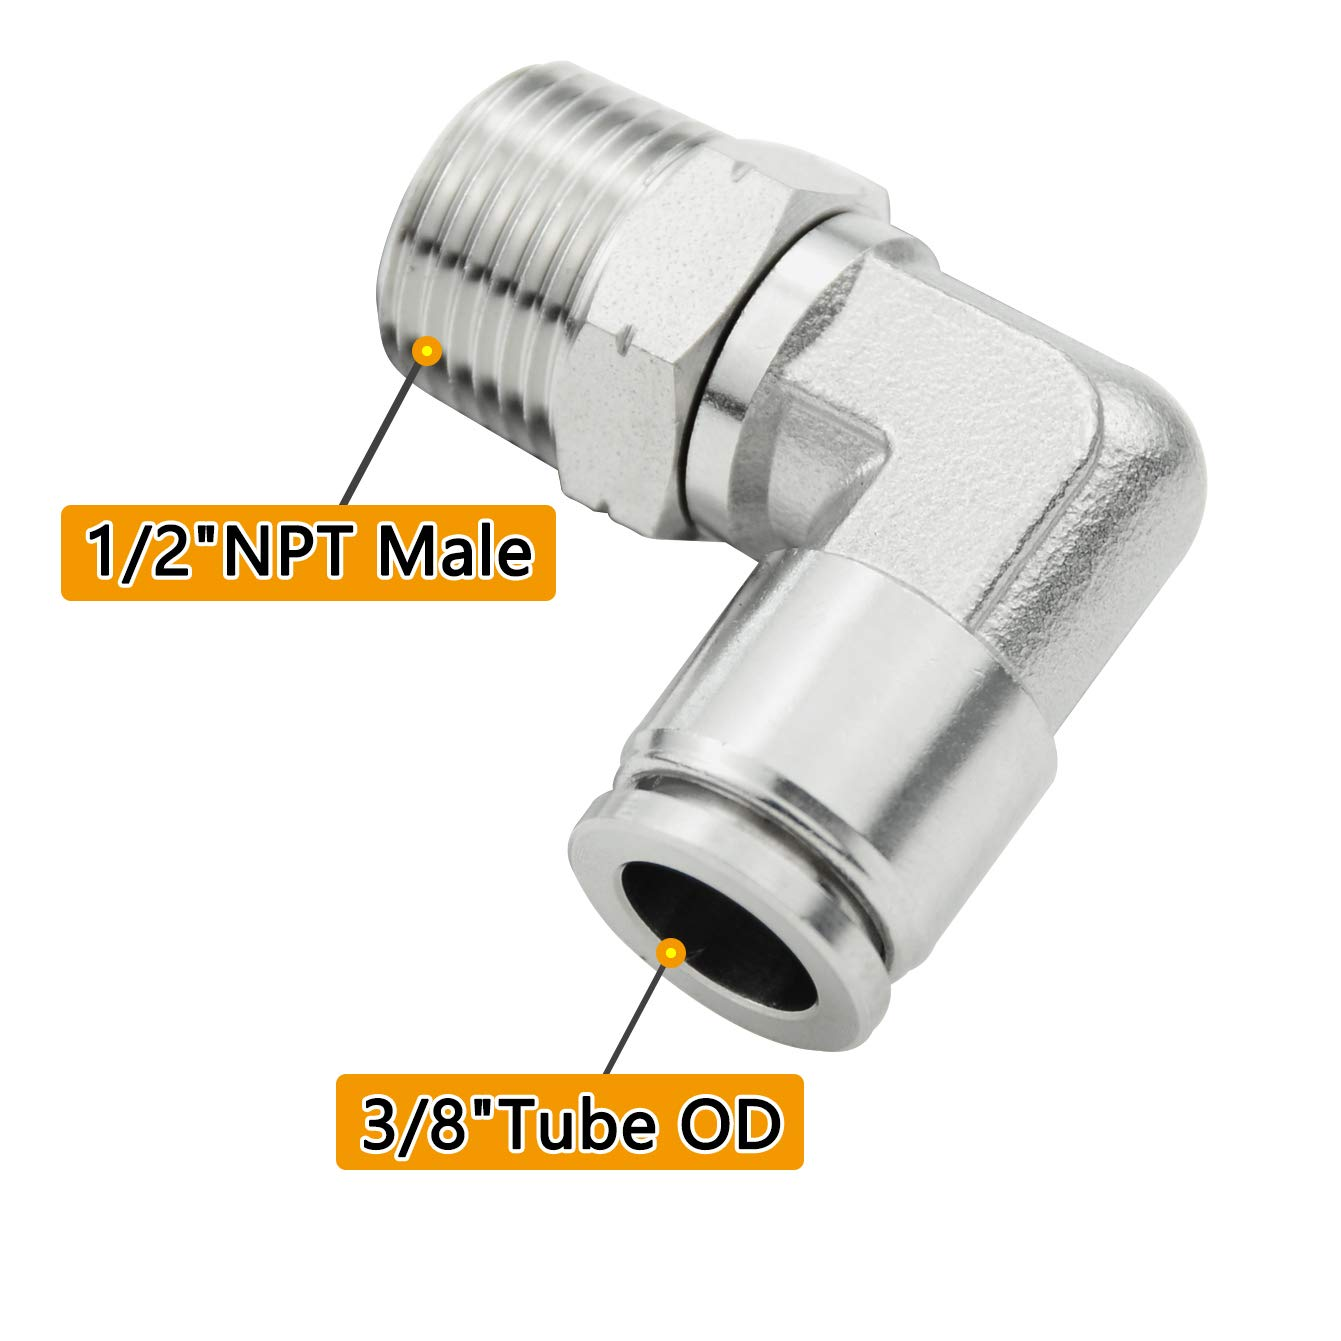 1//4 Tube OD x 1//8 NPT Male 90 Degree Elbow Adapter 304 Stainless Steel Air Union Fitting Beduan Push to Connect Fitting Elbow